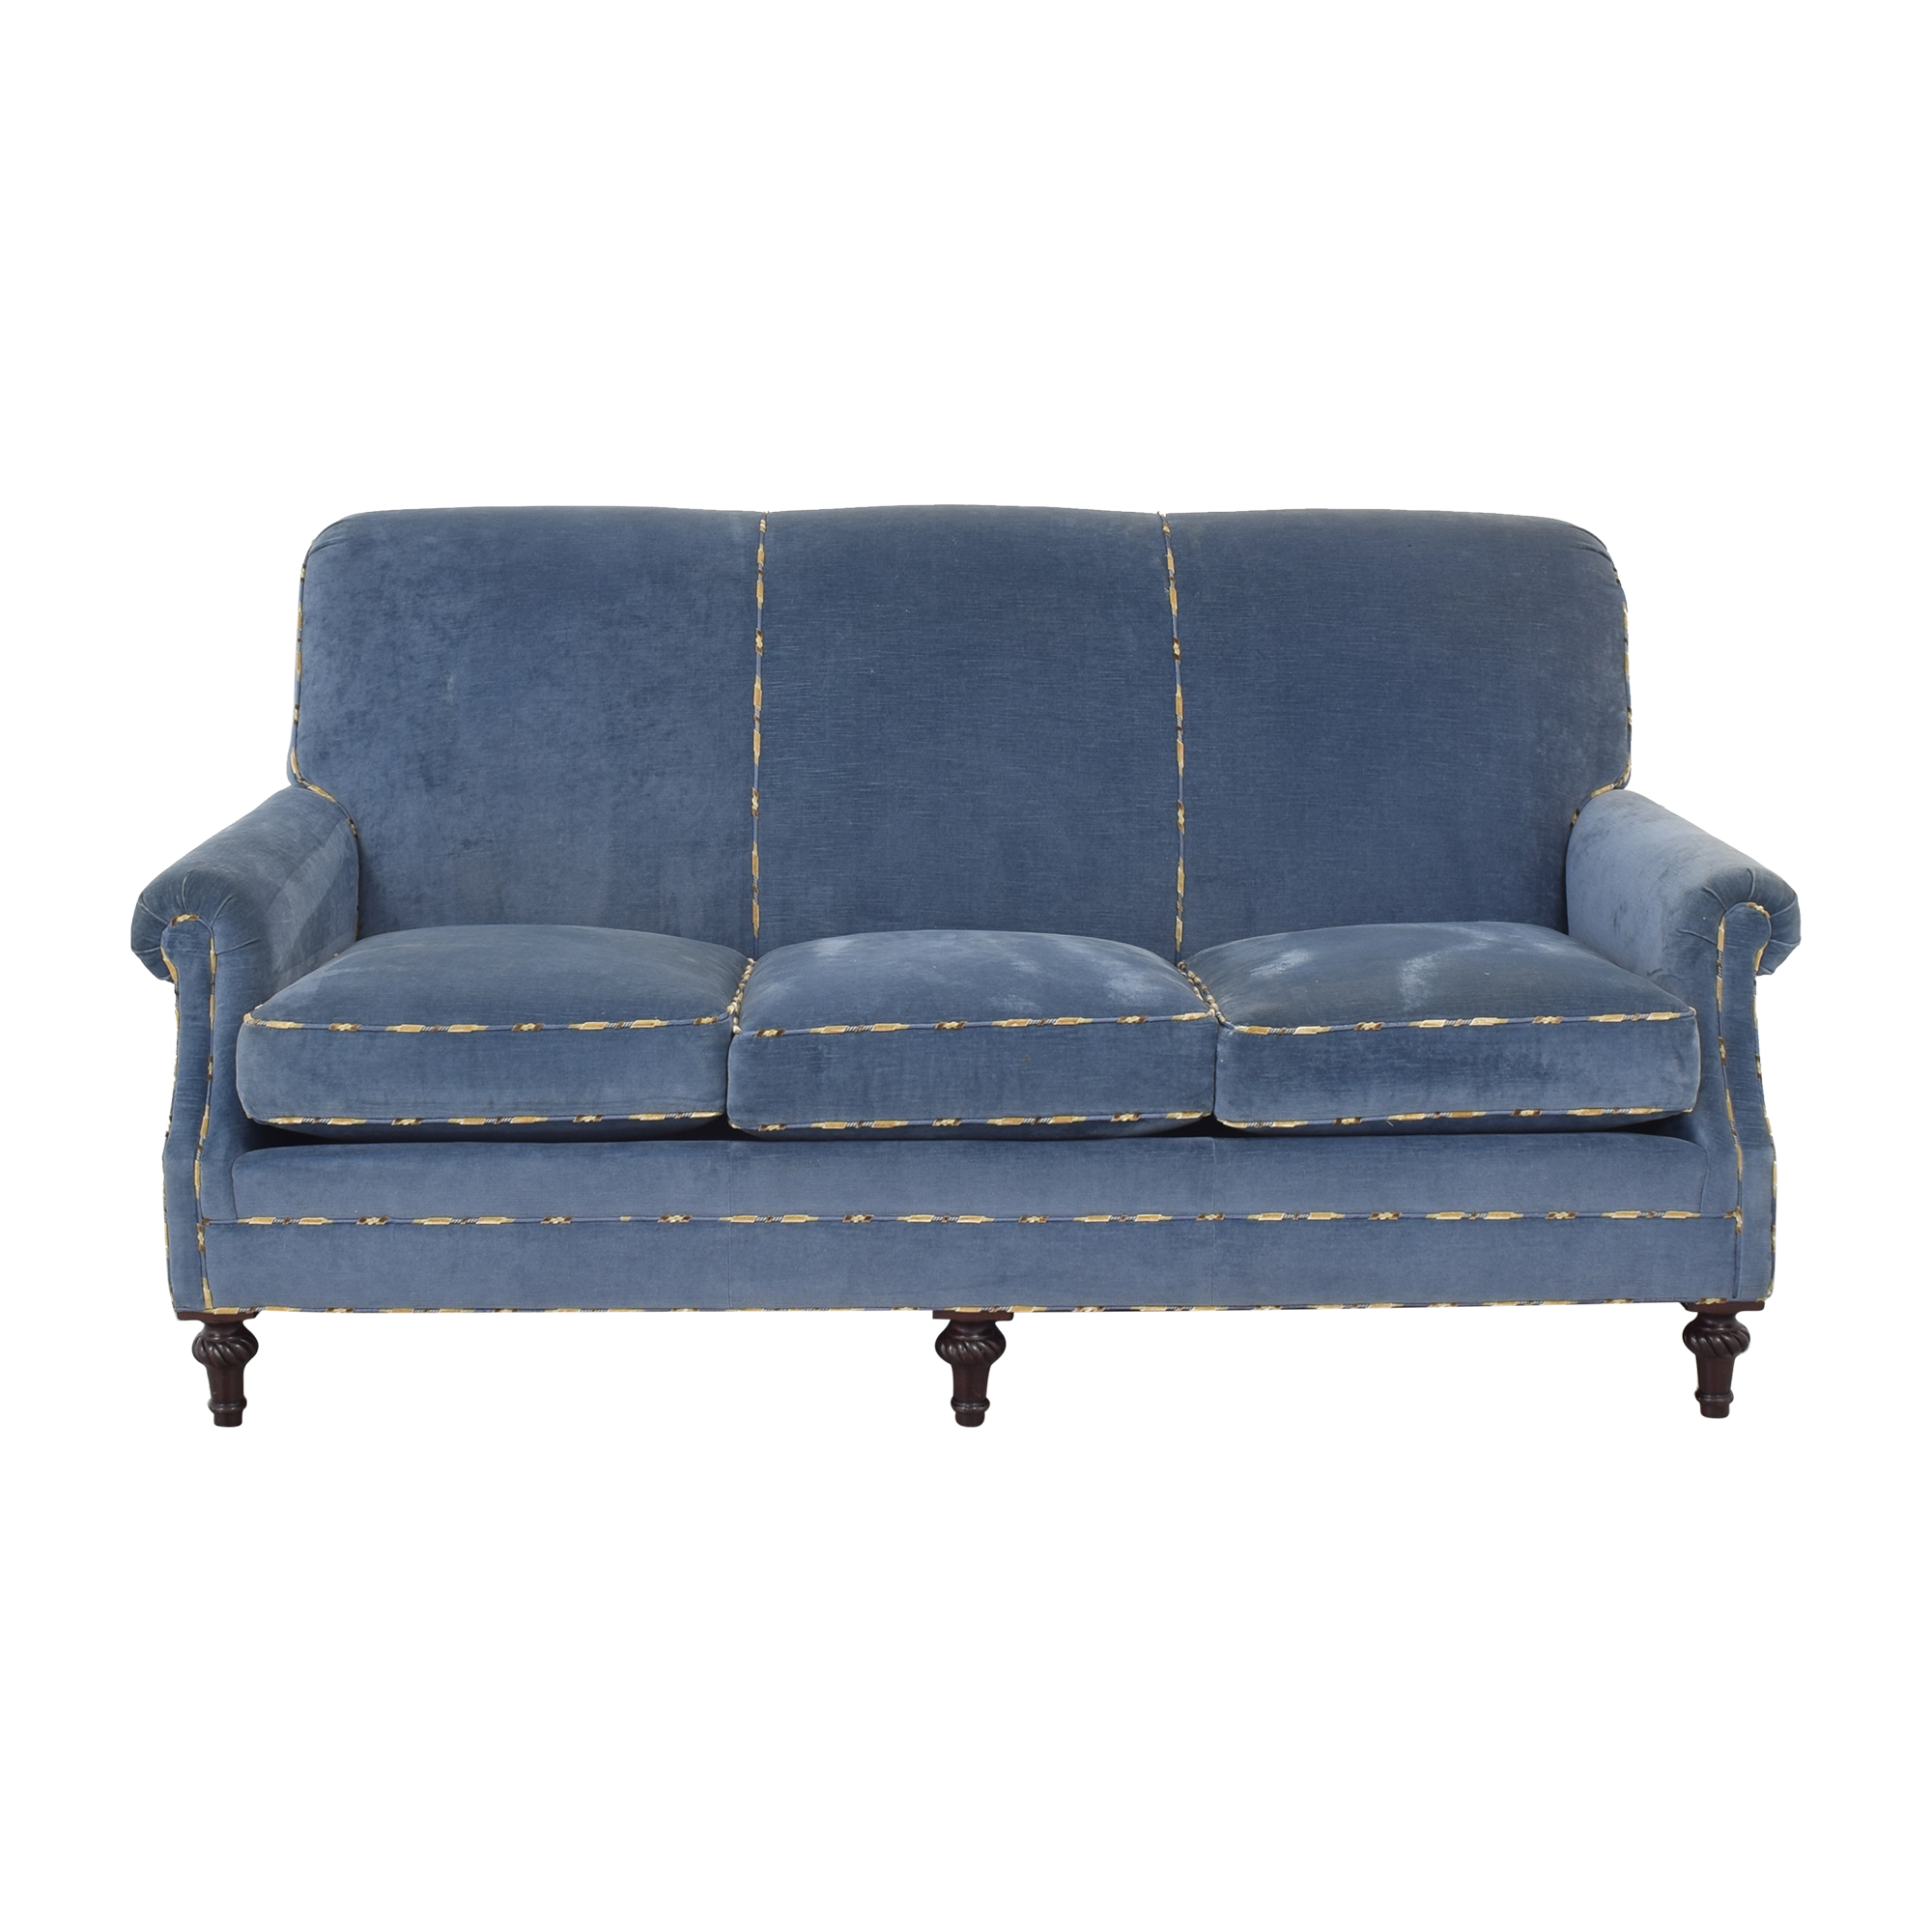 Charles Stewart Company Charles Stewart Company Sofa for sale